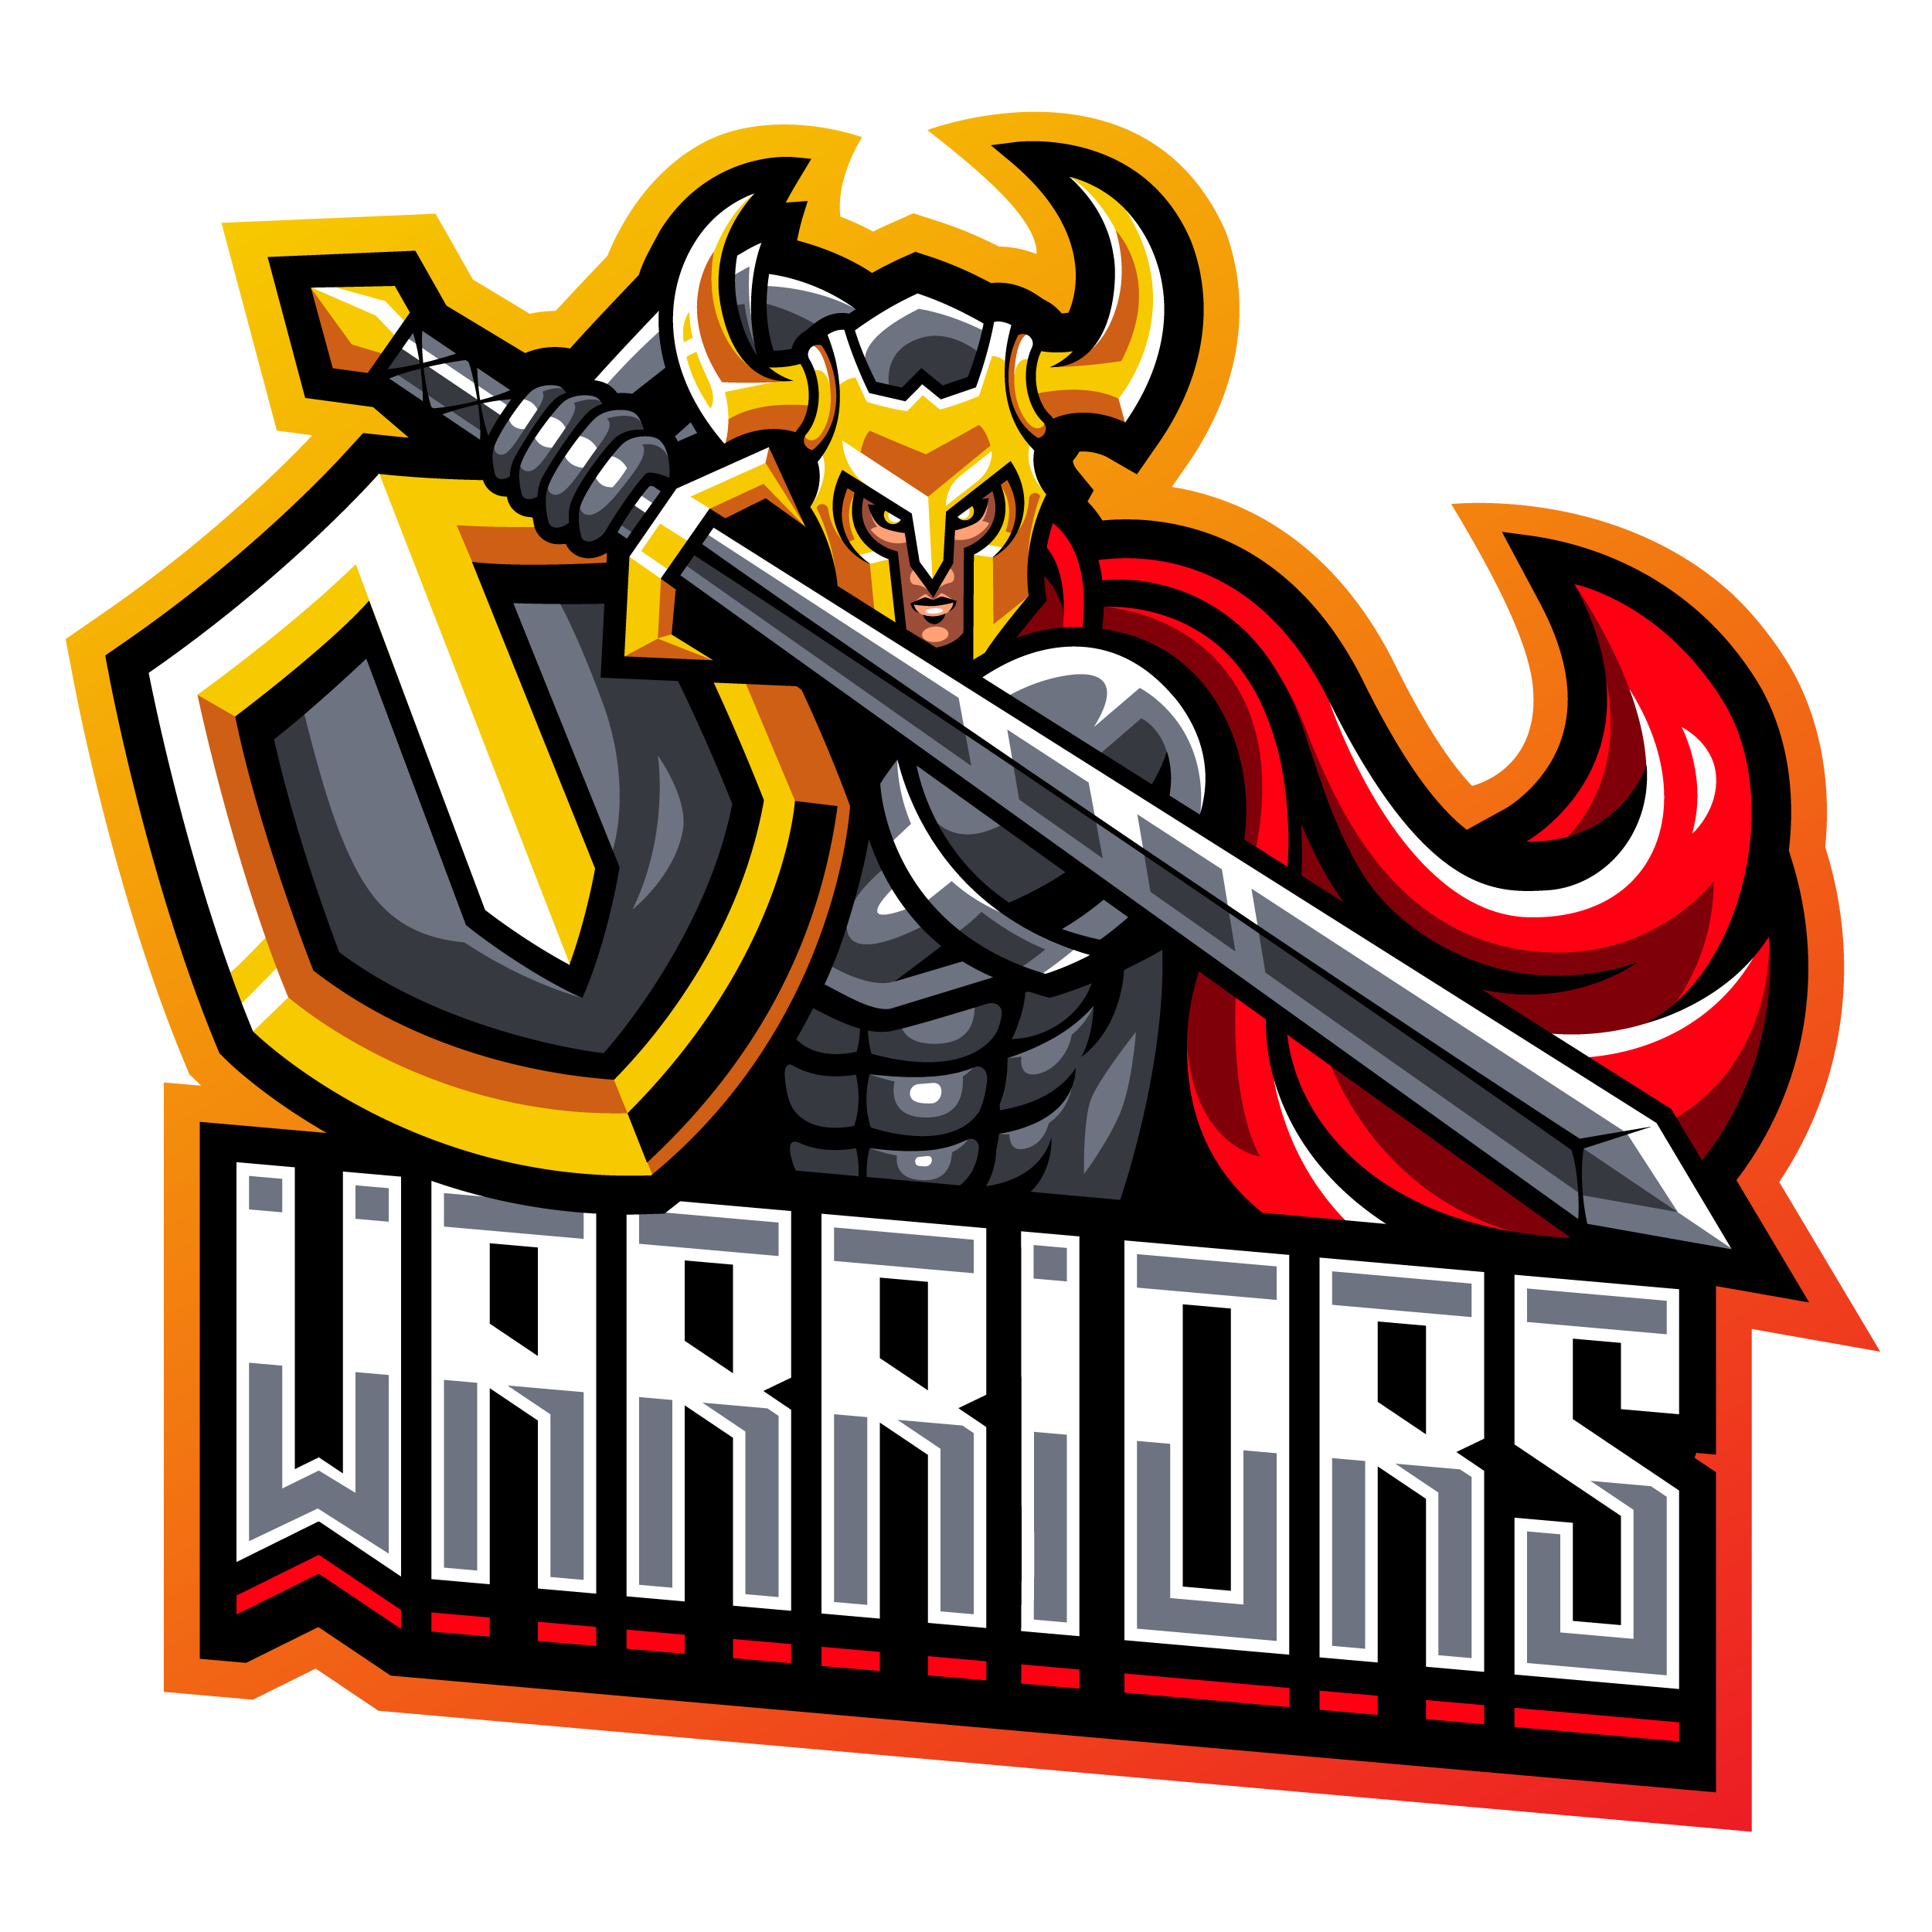 Warriors-Clan-Mascot-Logo-PNG-Transparent